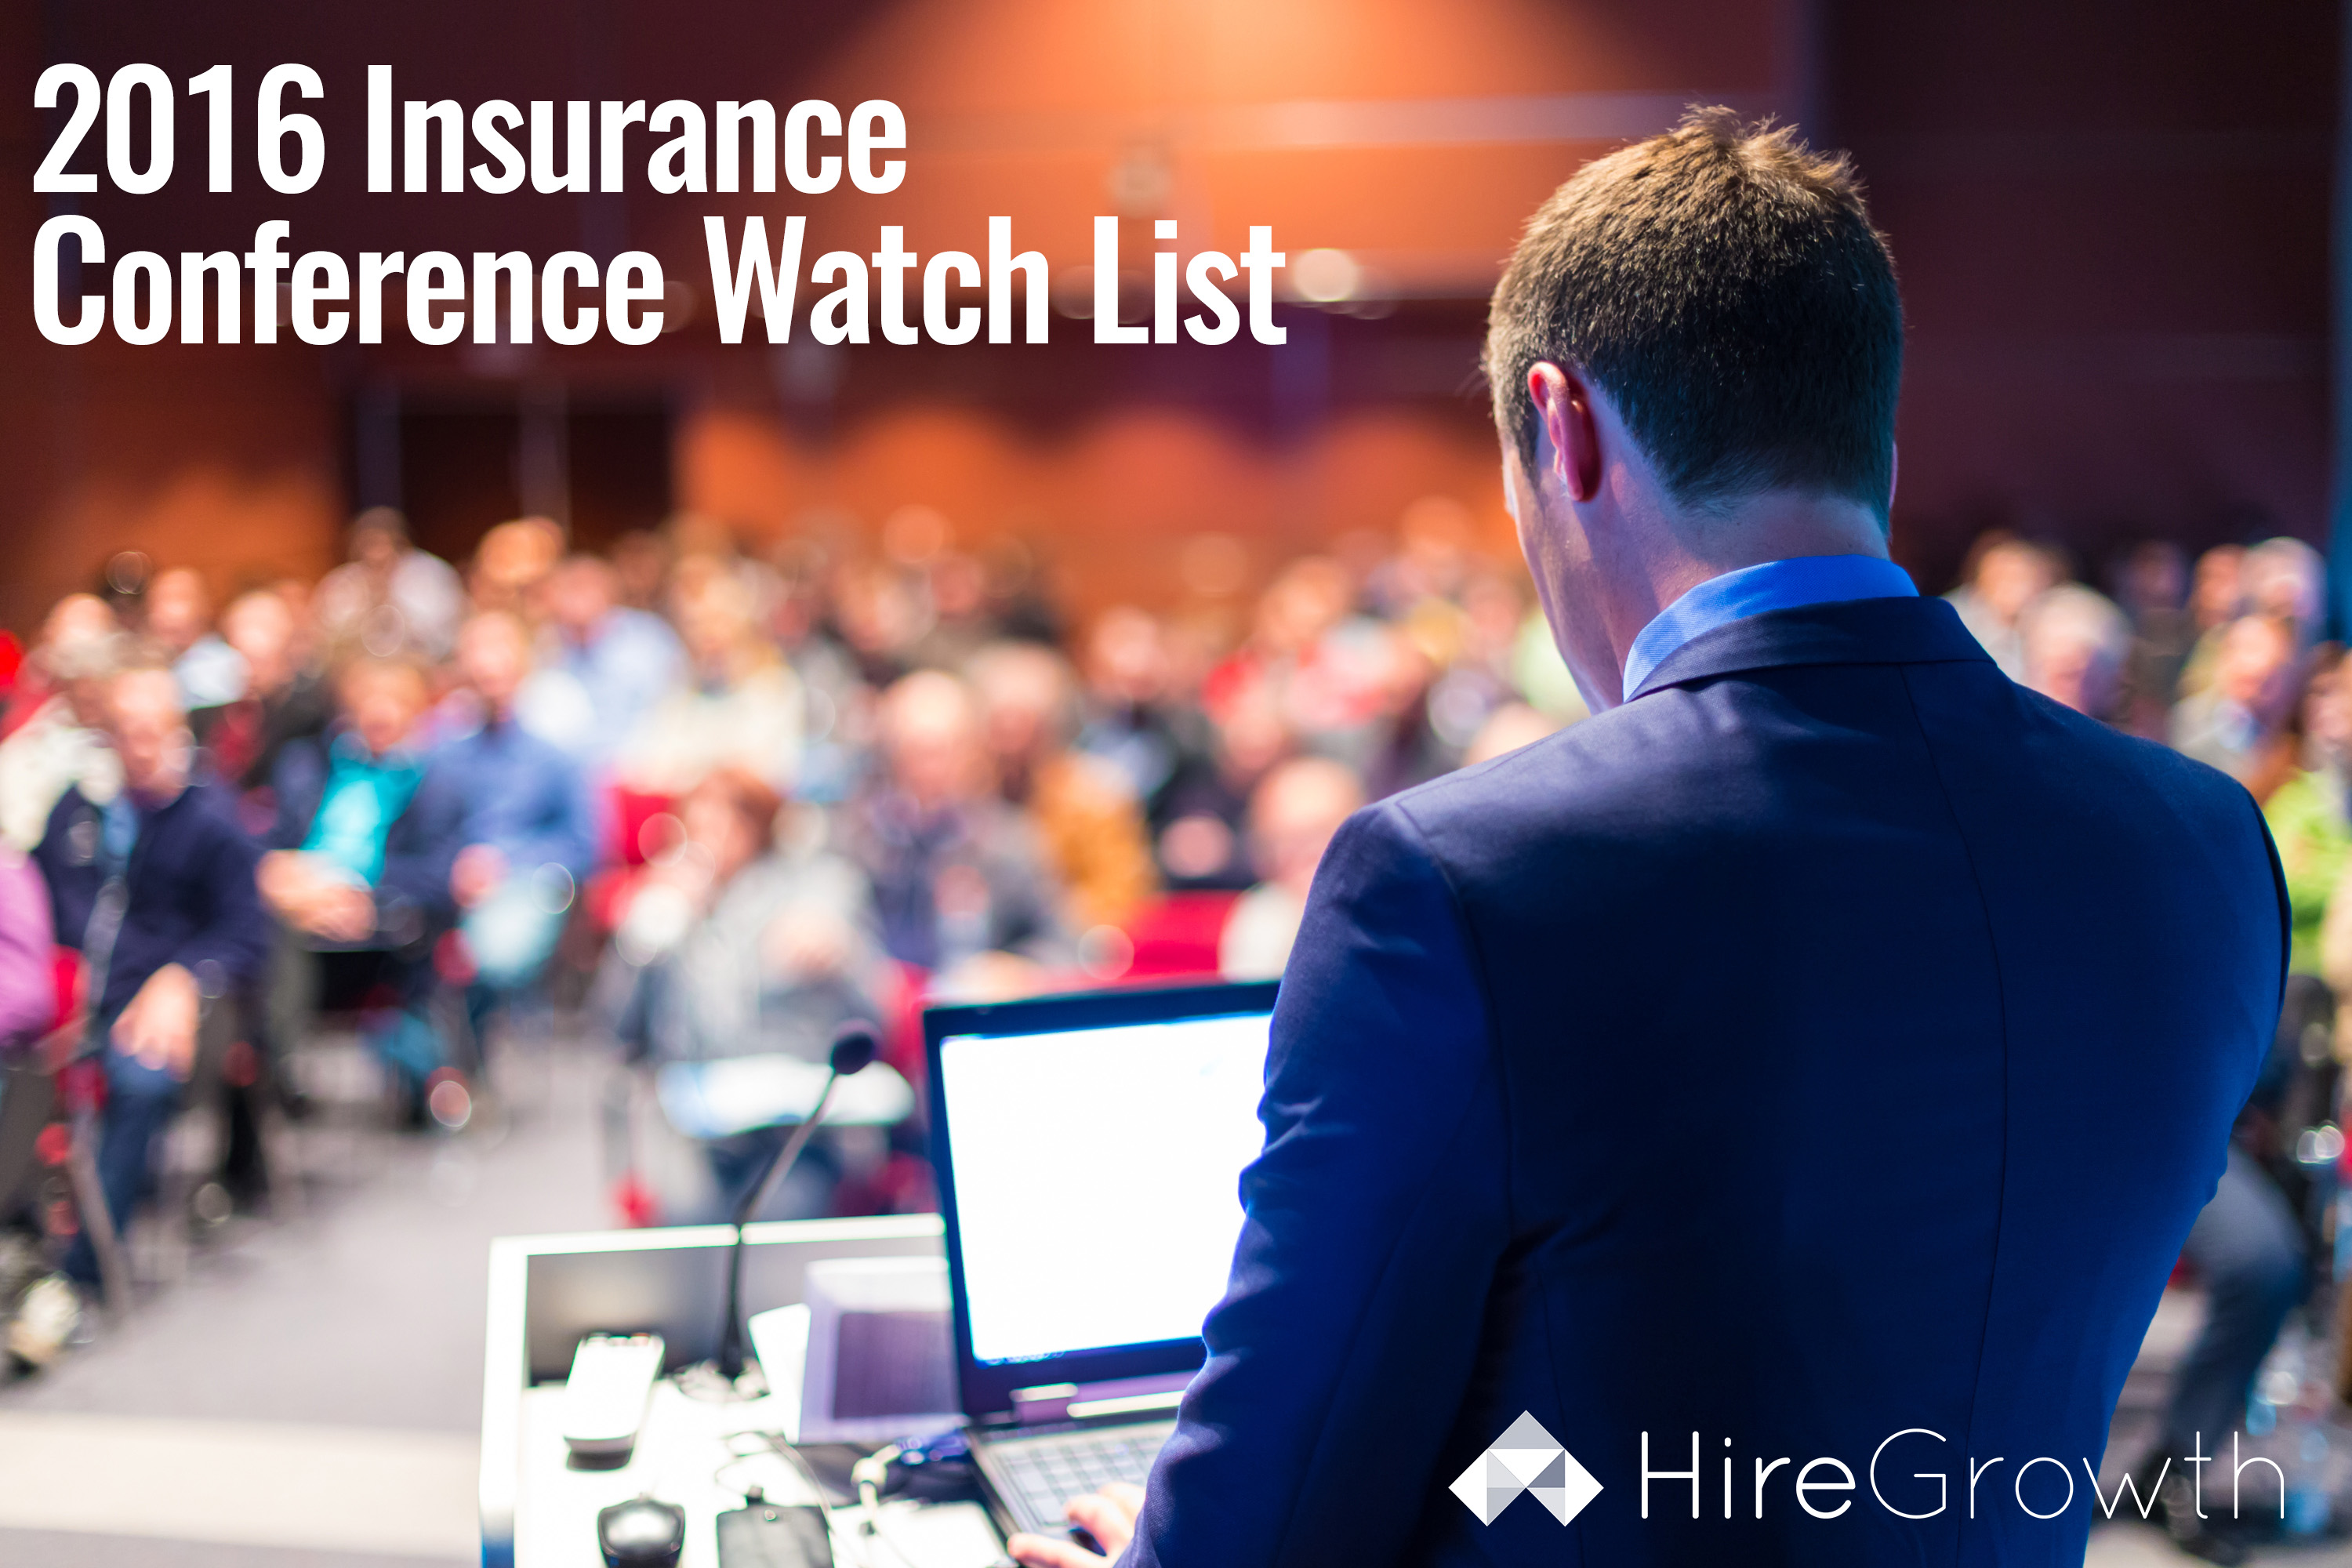 2016 Insurance Conference Watch List